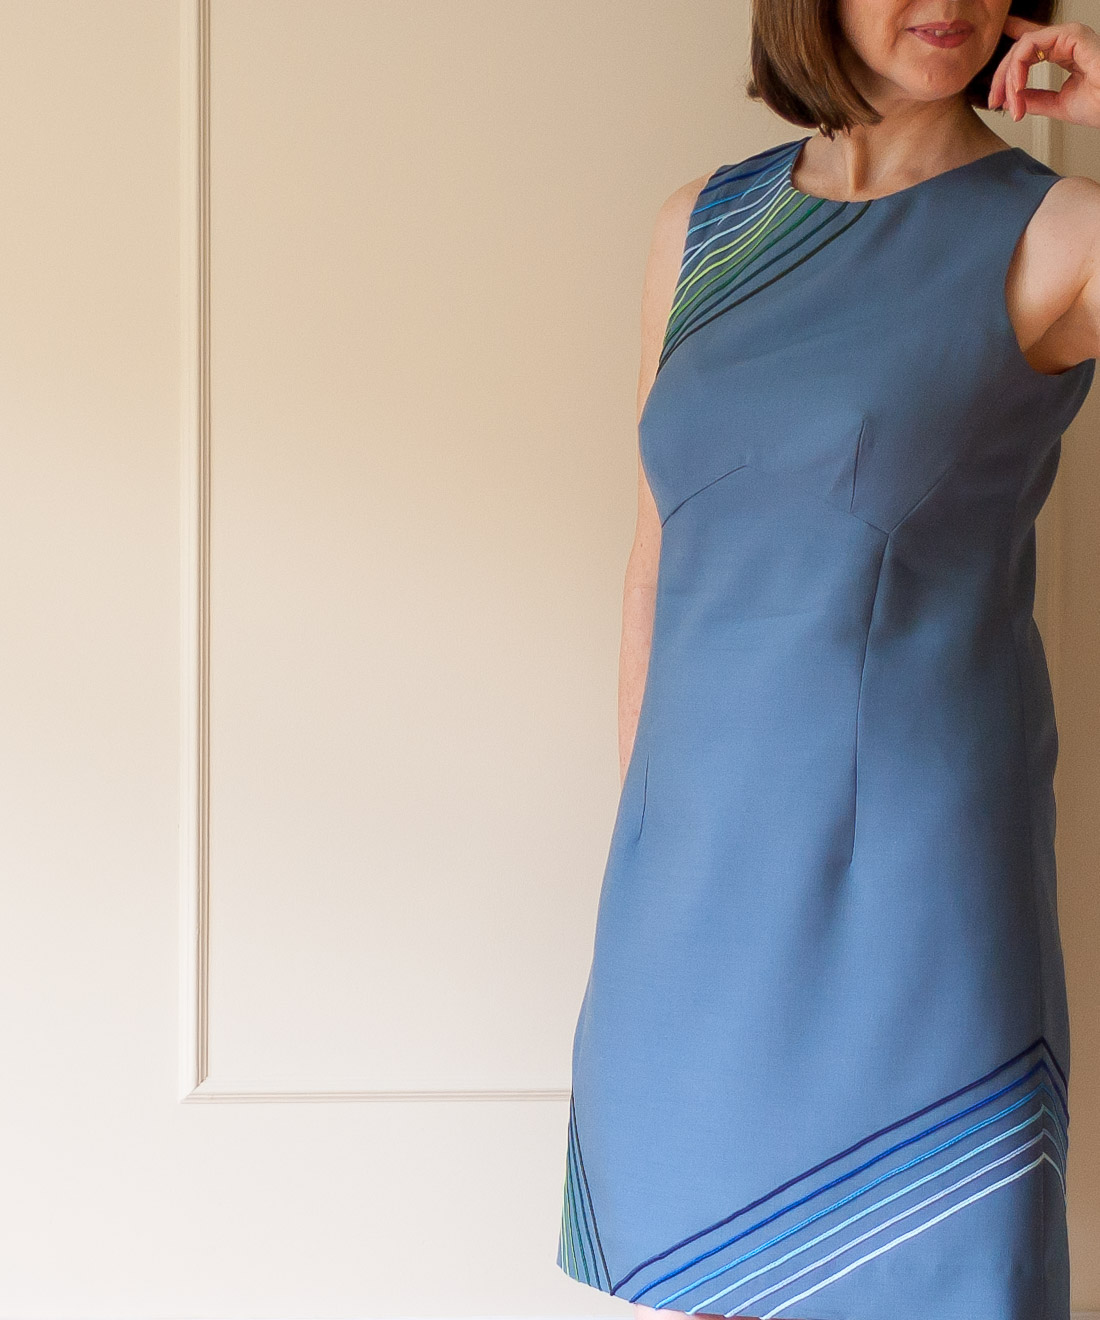 DIY 60s Style dress. Close up showing seaming.